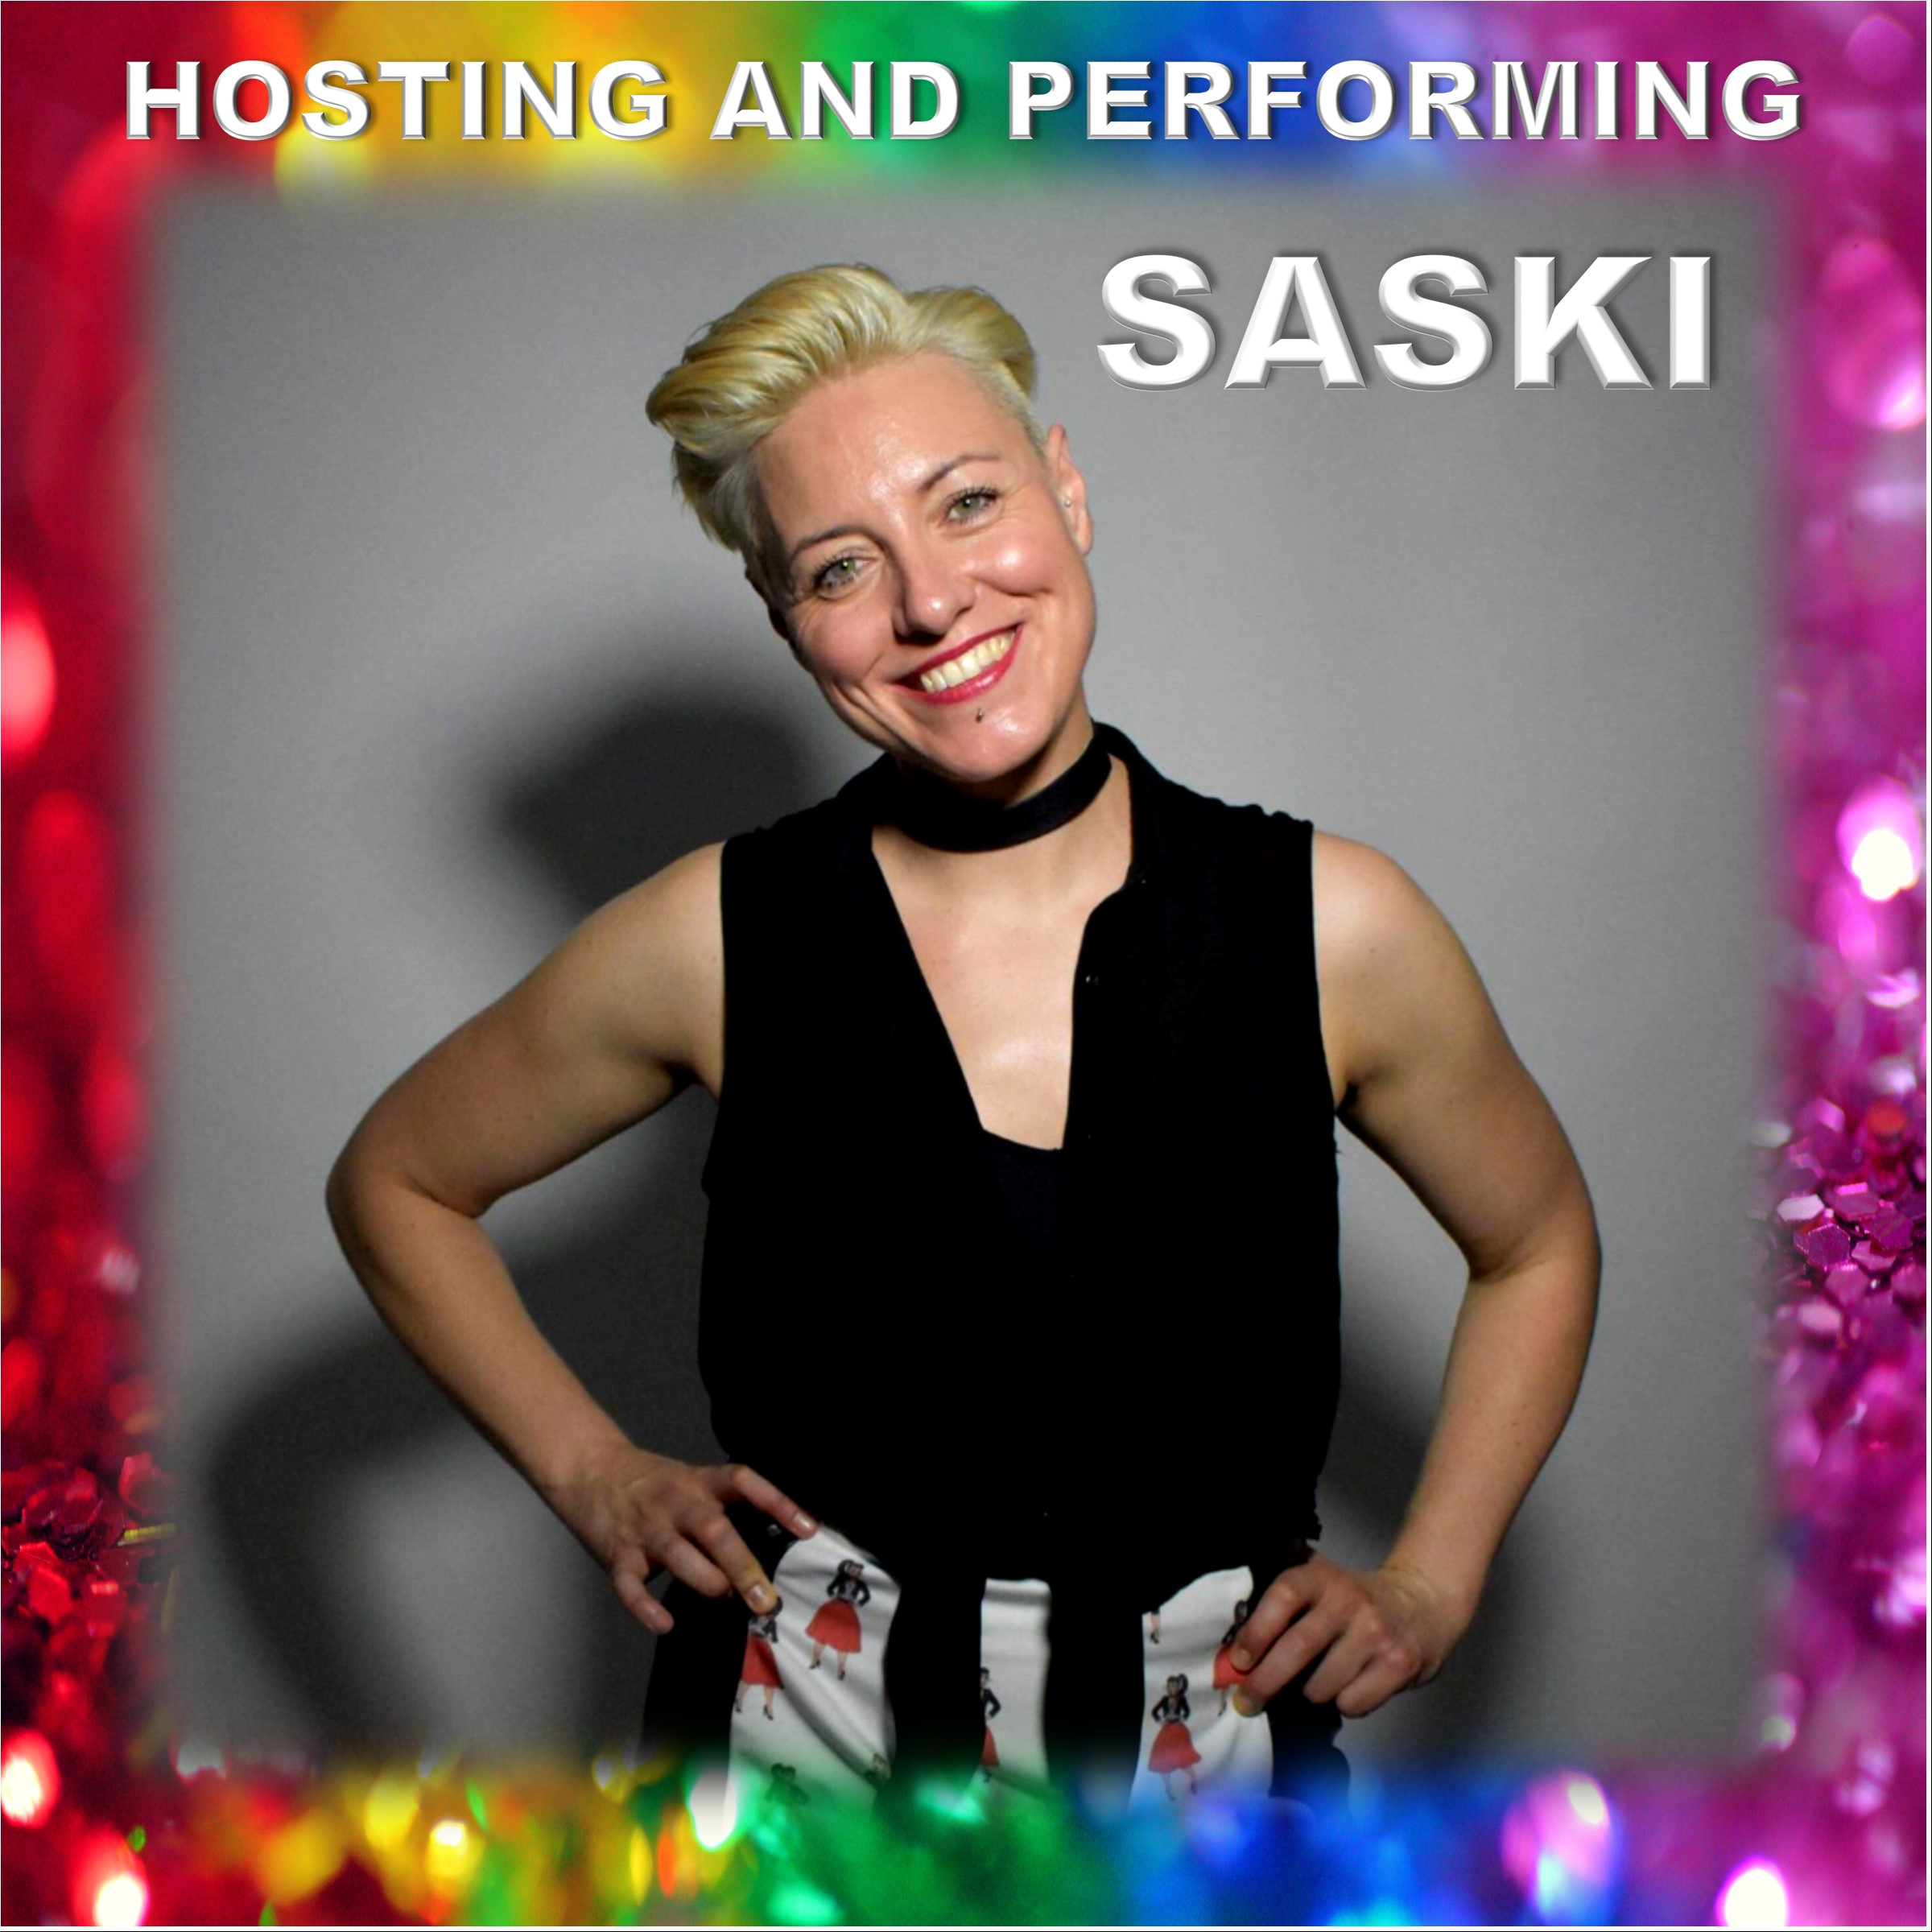 Hosting and Performing - Saski